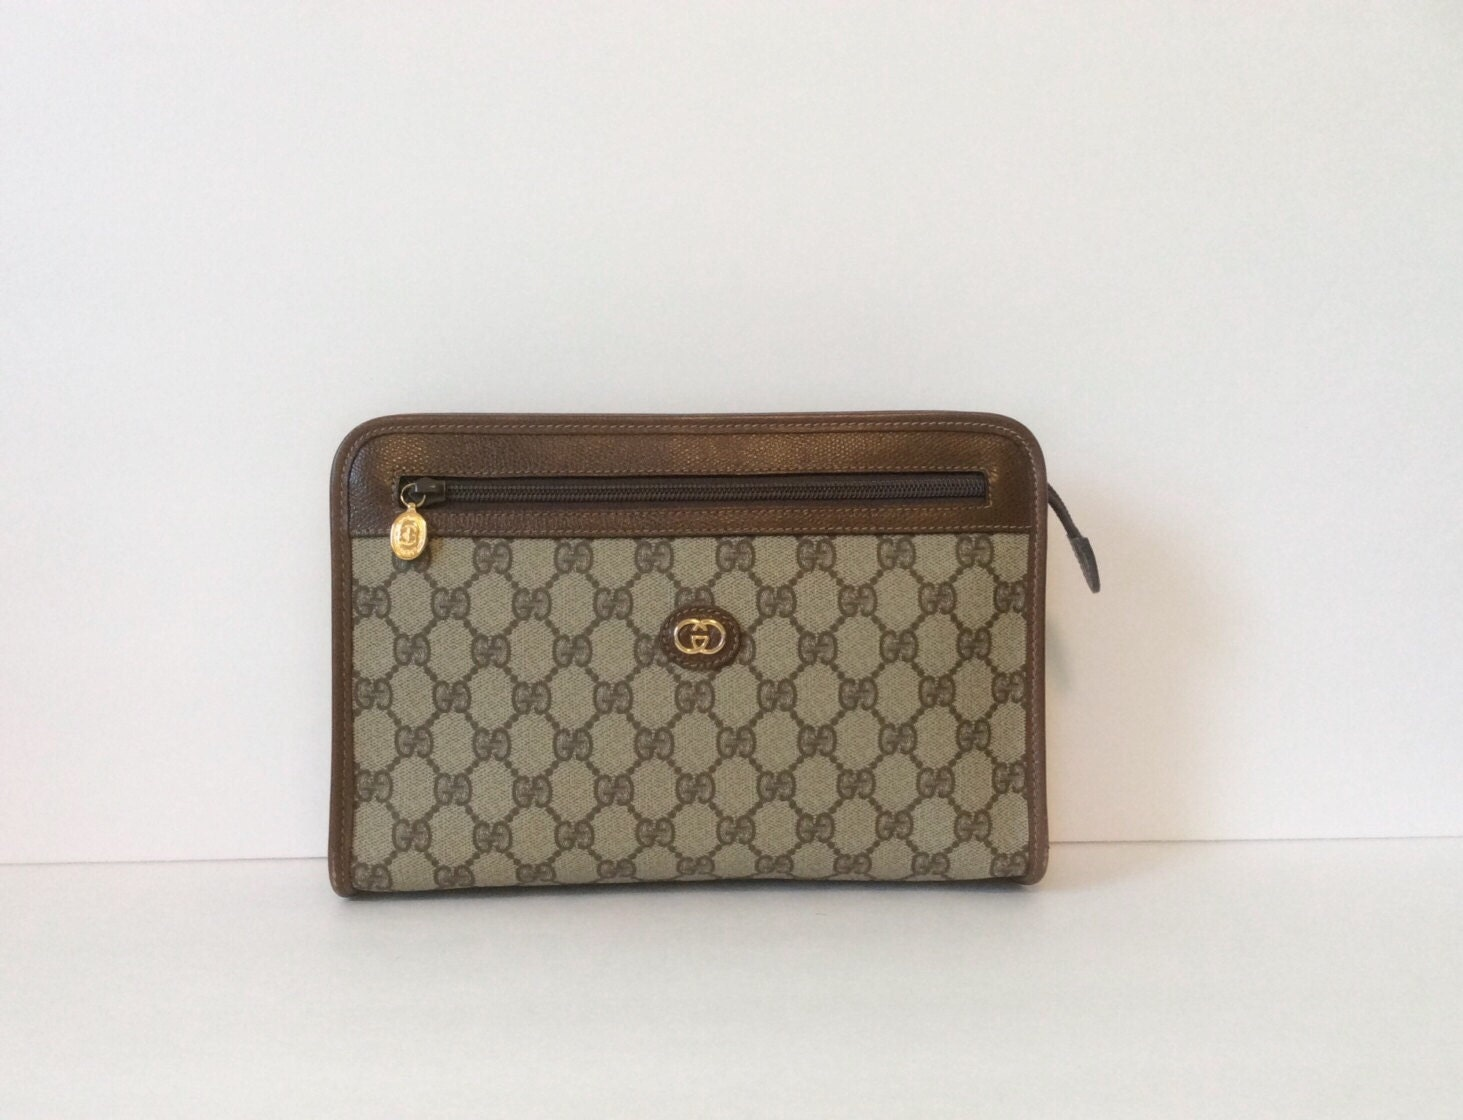 af6cc1964e7a3a Ultimate Guide on How to Tell if a Gucci Bag is Real (or Fake) Vintage Gucci  clutch // Gucci GG logo zip top by VintieSweetheart